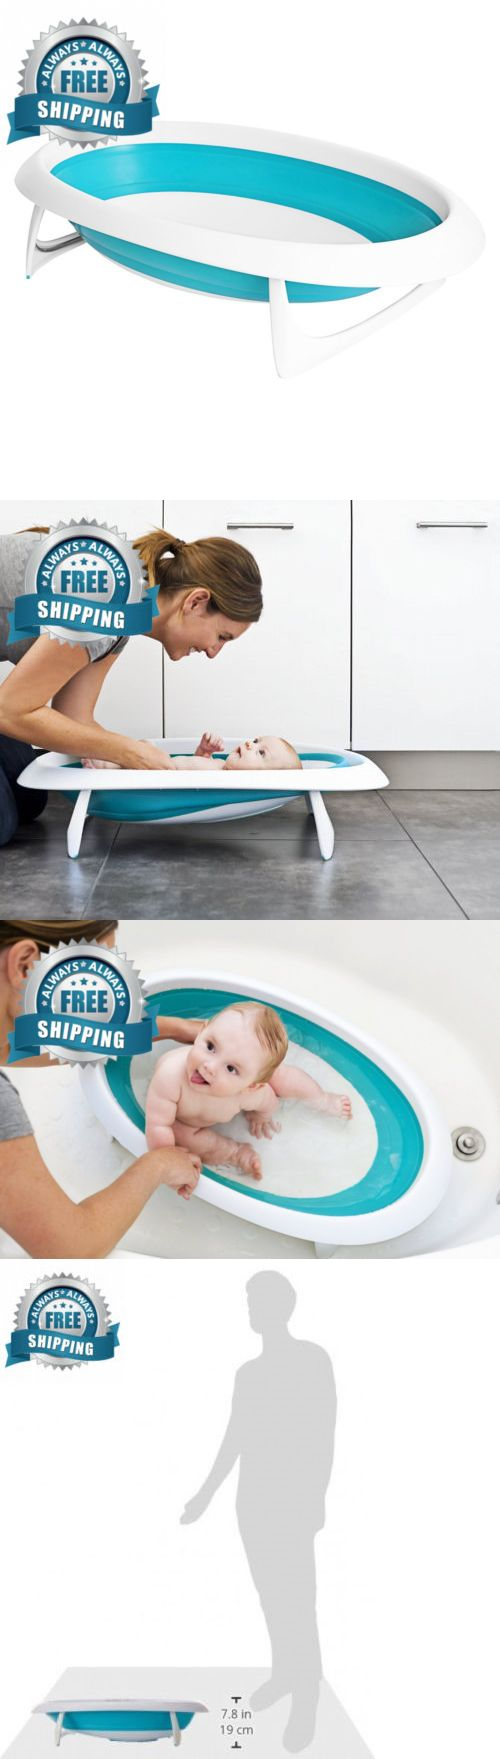 Boon Naked Collapsible Baby Bathtub Blue,Blue White | Bath Tubs ...